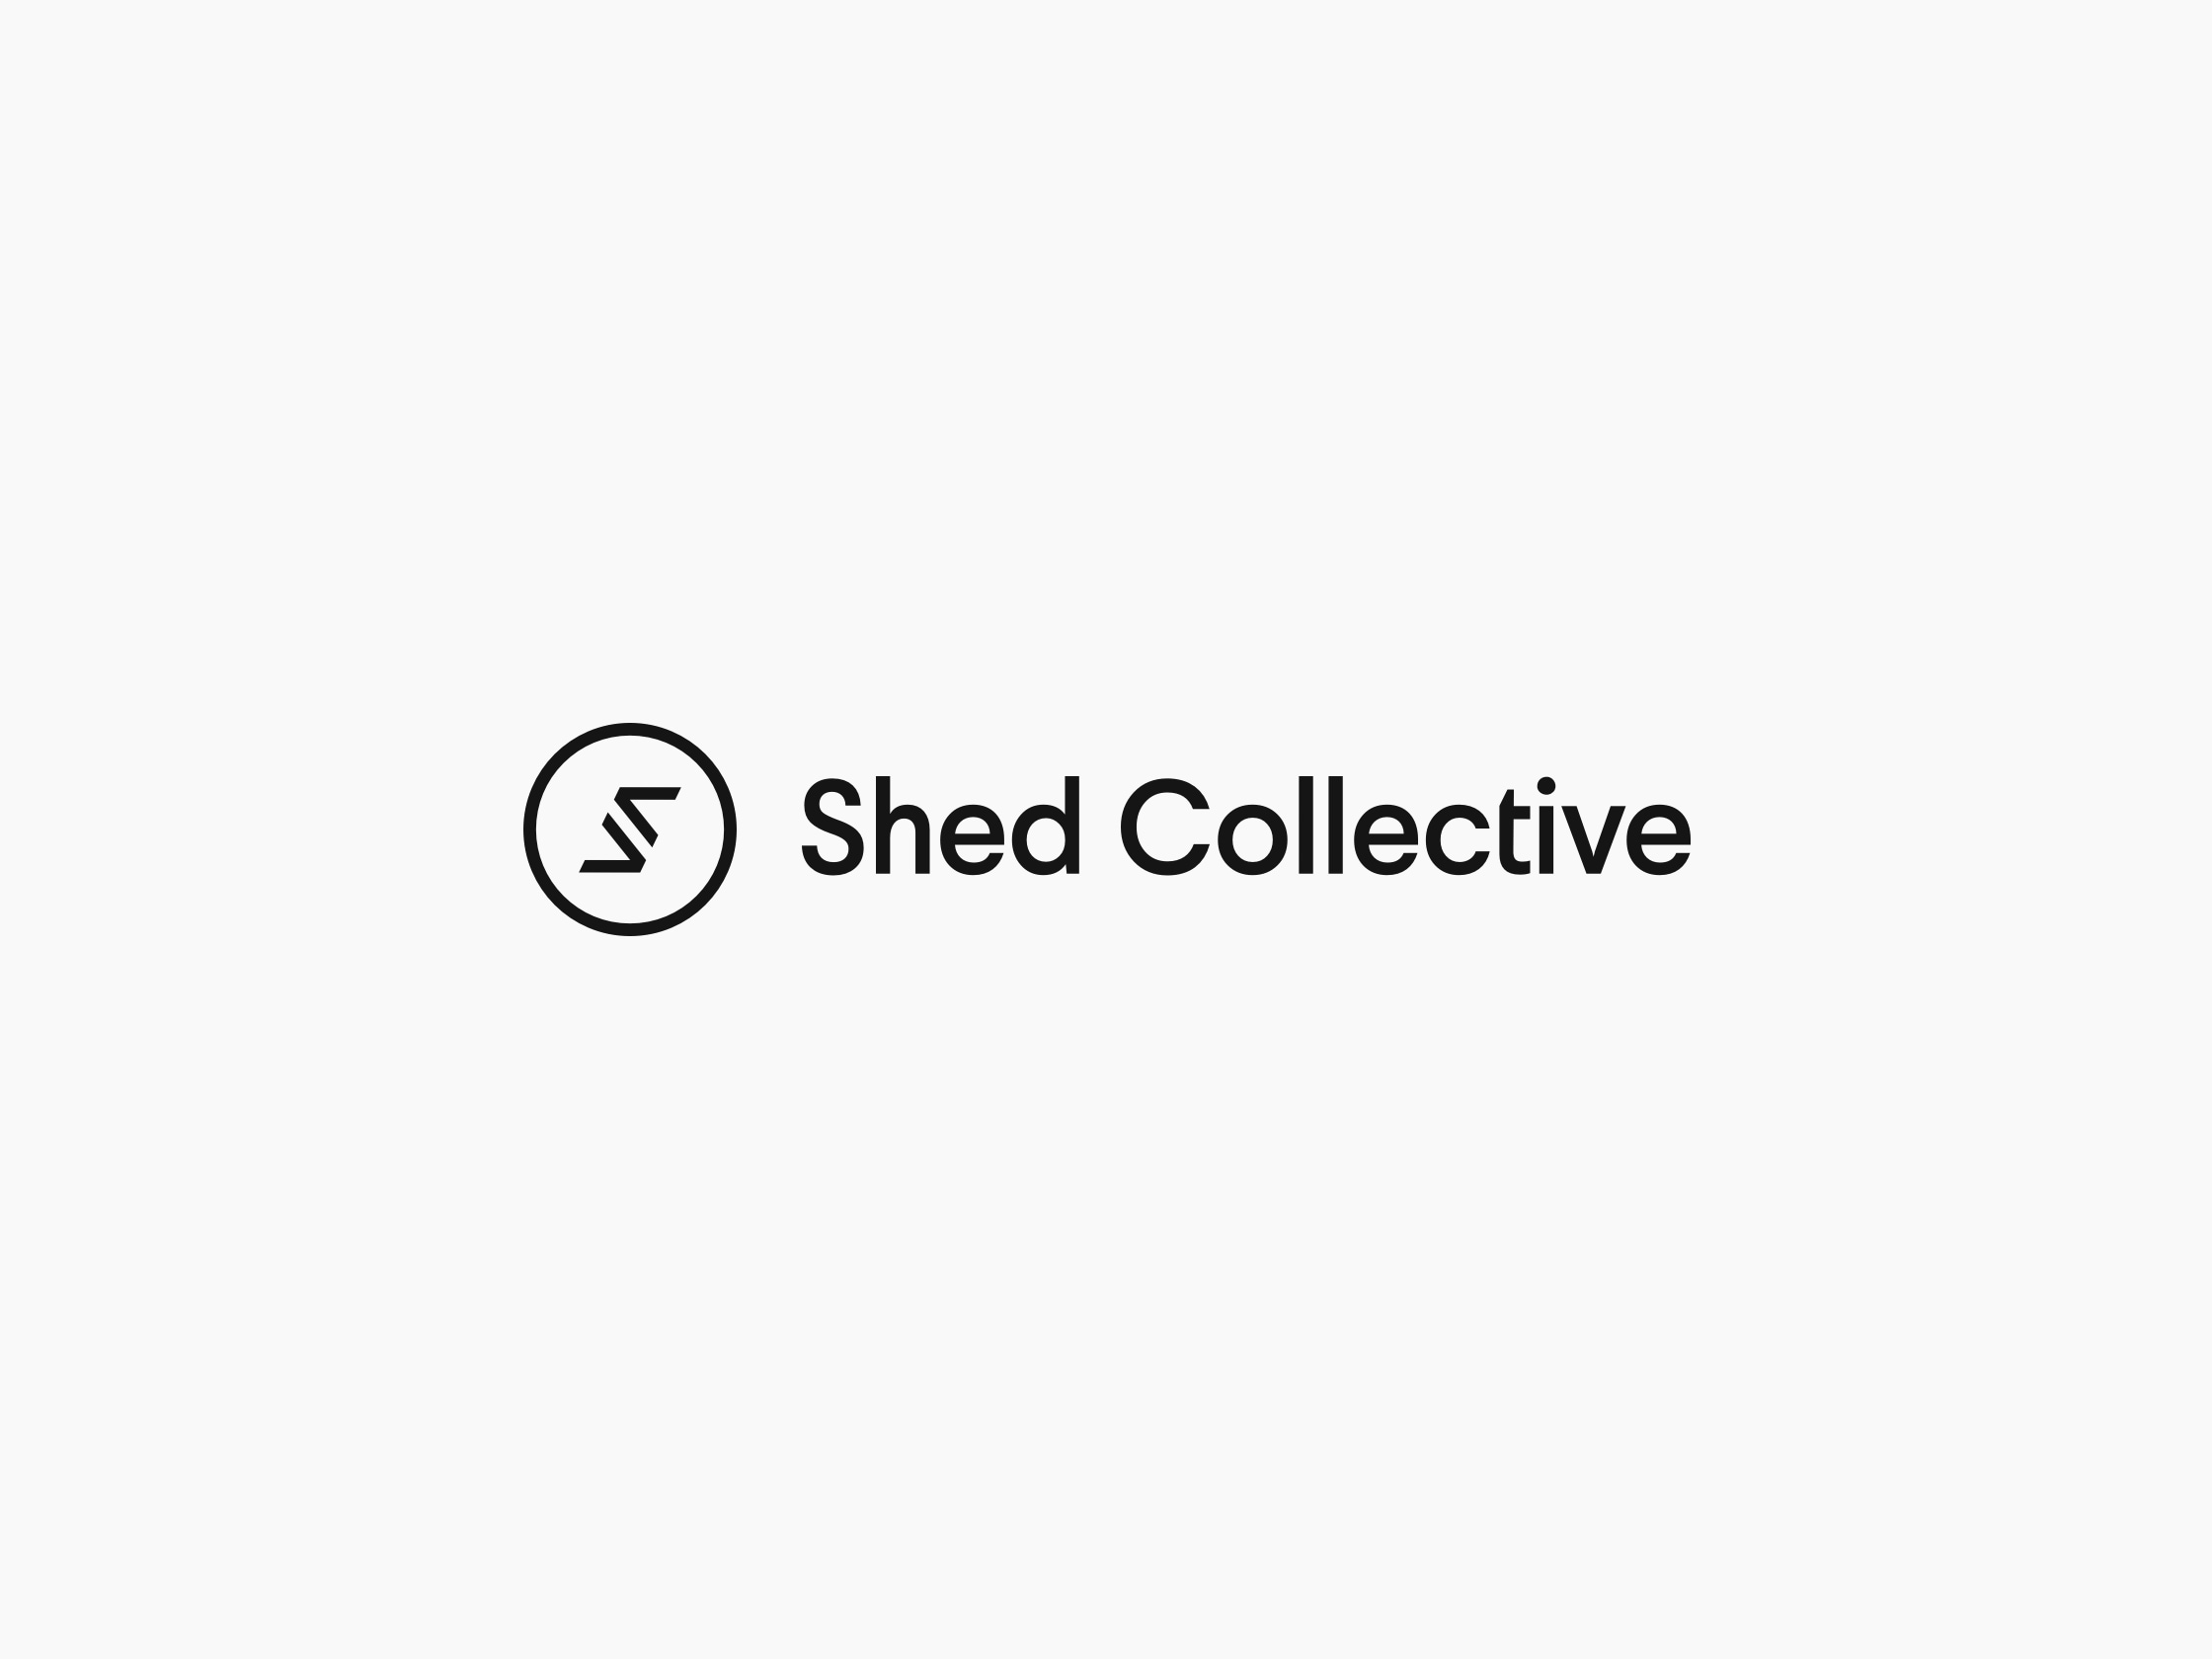 Shed Collective logo